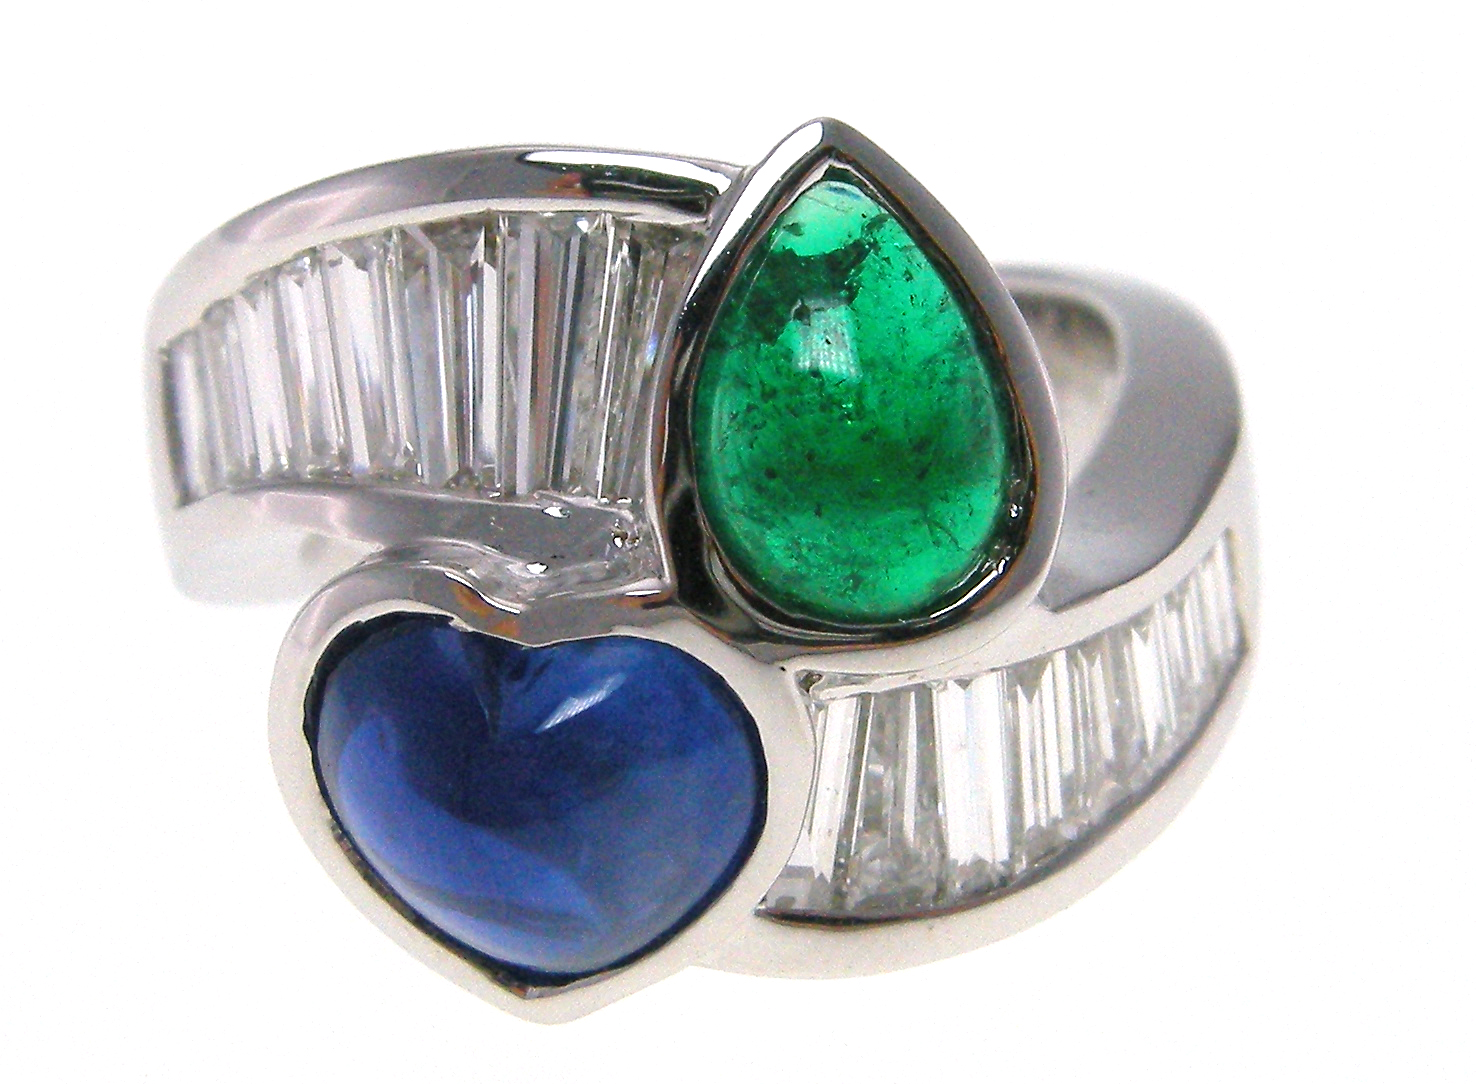 CABOCHAN EMERALD & SAPPHIRE RING WITH DIAMOND BAGUETTES BESPOKE FINE JEWELLERY BY SHAHINA HATTA